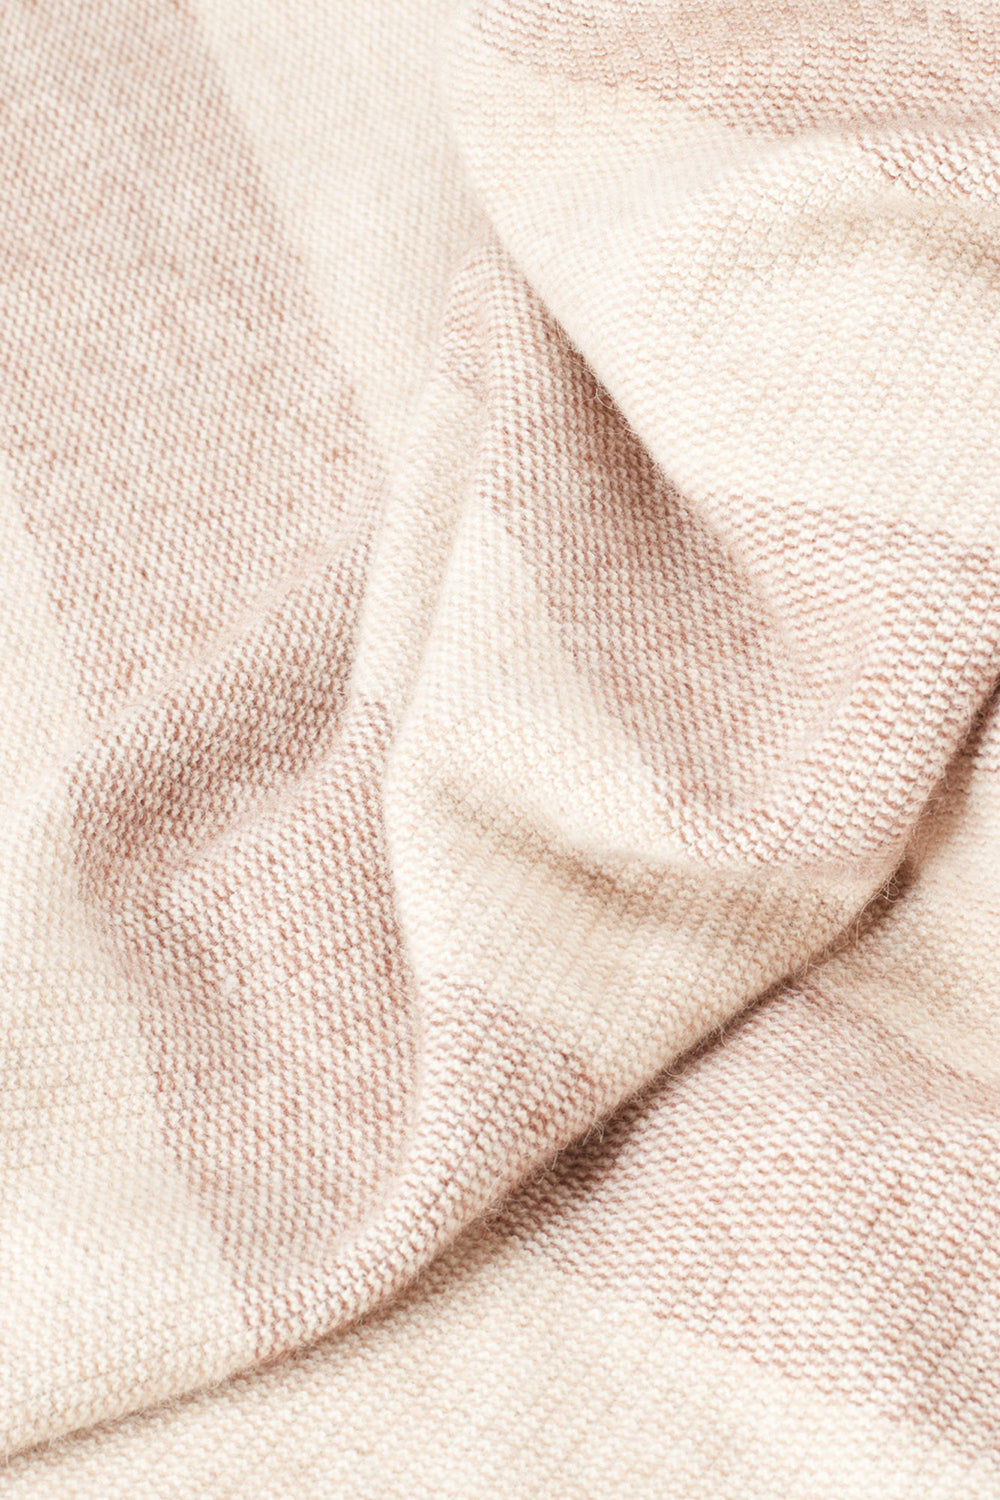 EXMOOR THROW - Sandstone